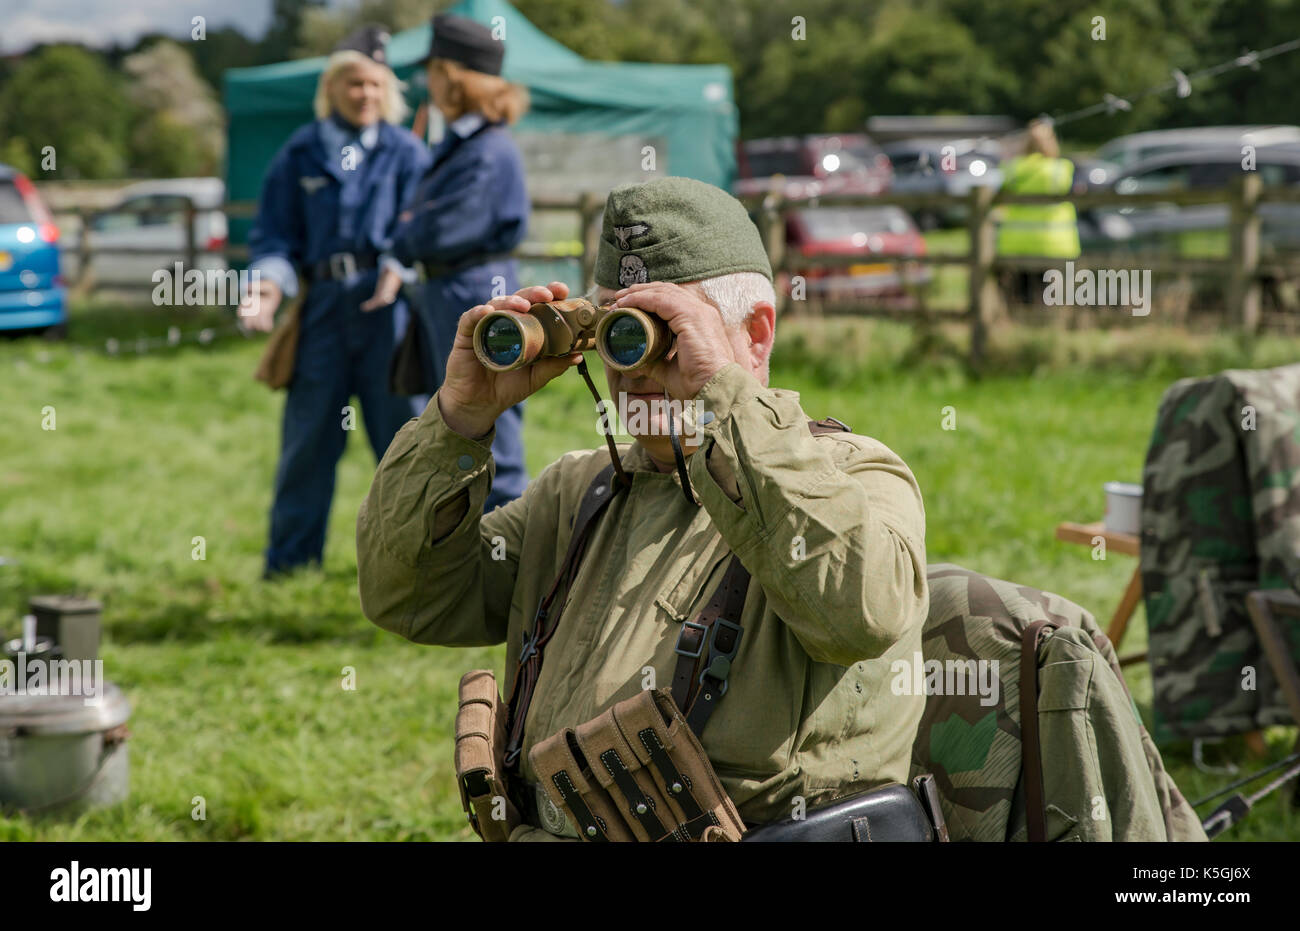 Stoke Bruerne's village at war weekend,re-enactors from all over the UK enjoy a weekend of vintage fun. Credit: Scott Carruthers/Alamy Live News - Stock Image